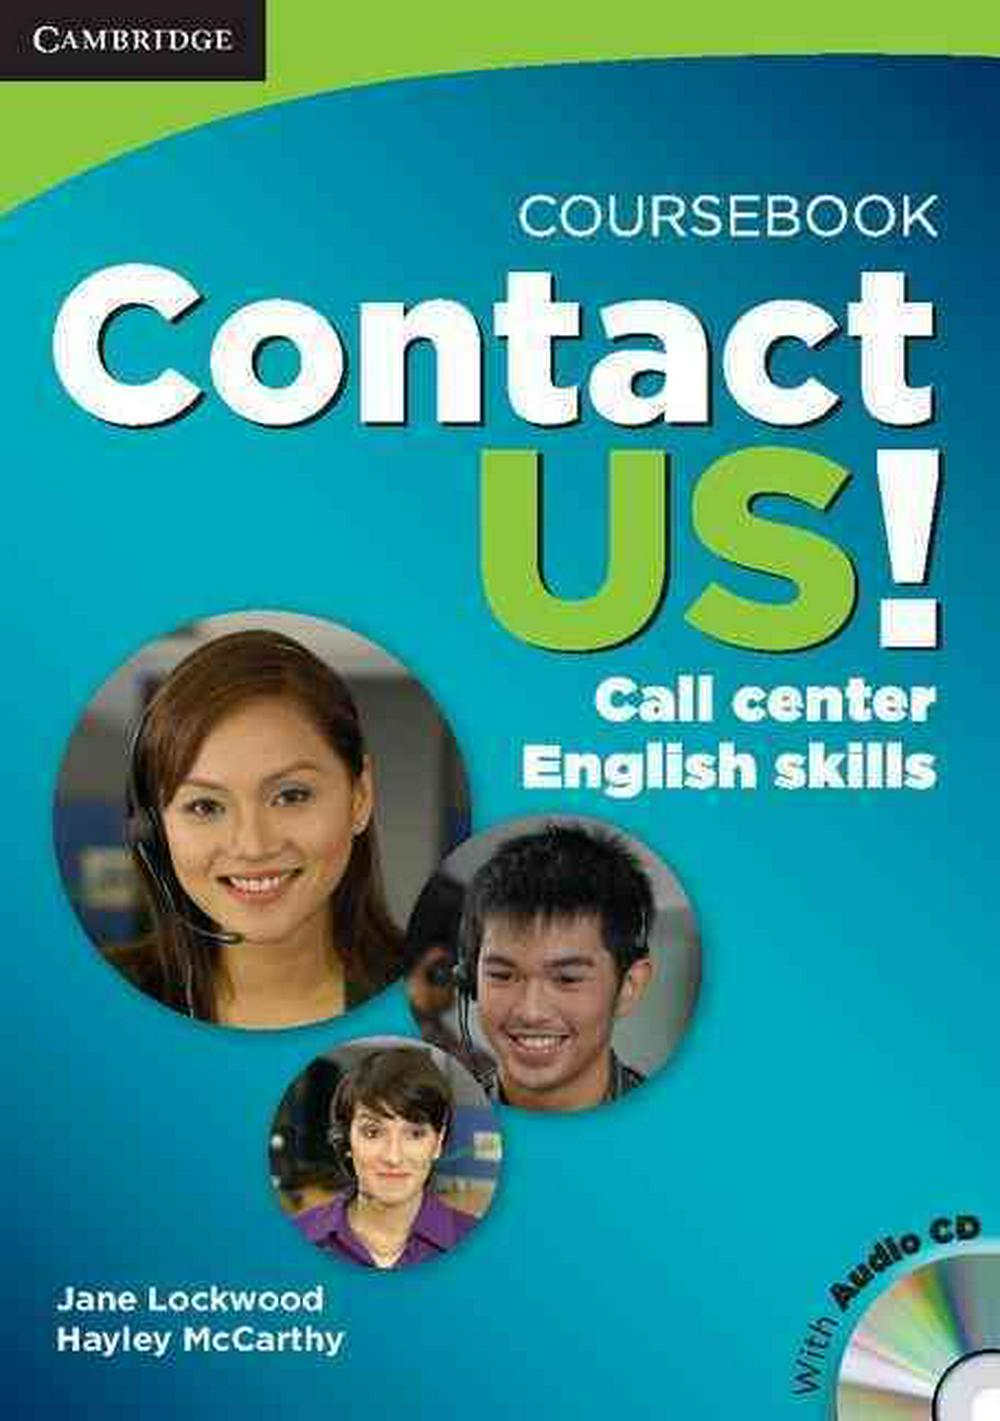 Contact US! Coursebook with Audio CD by Jane Lockwood, ISBN: 9780521124737